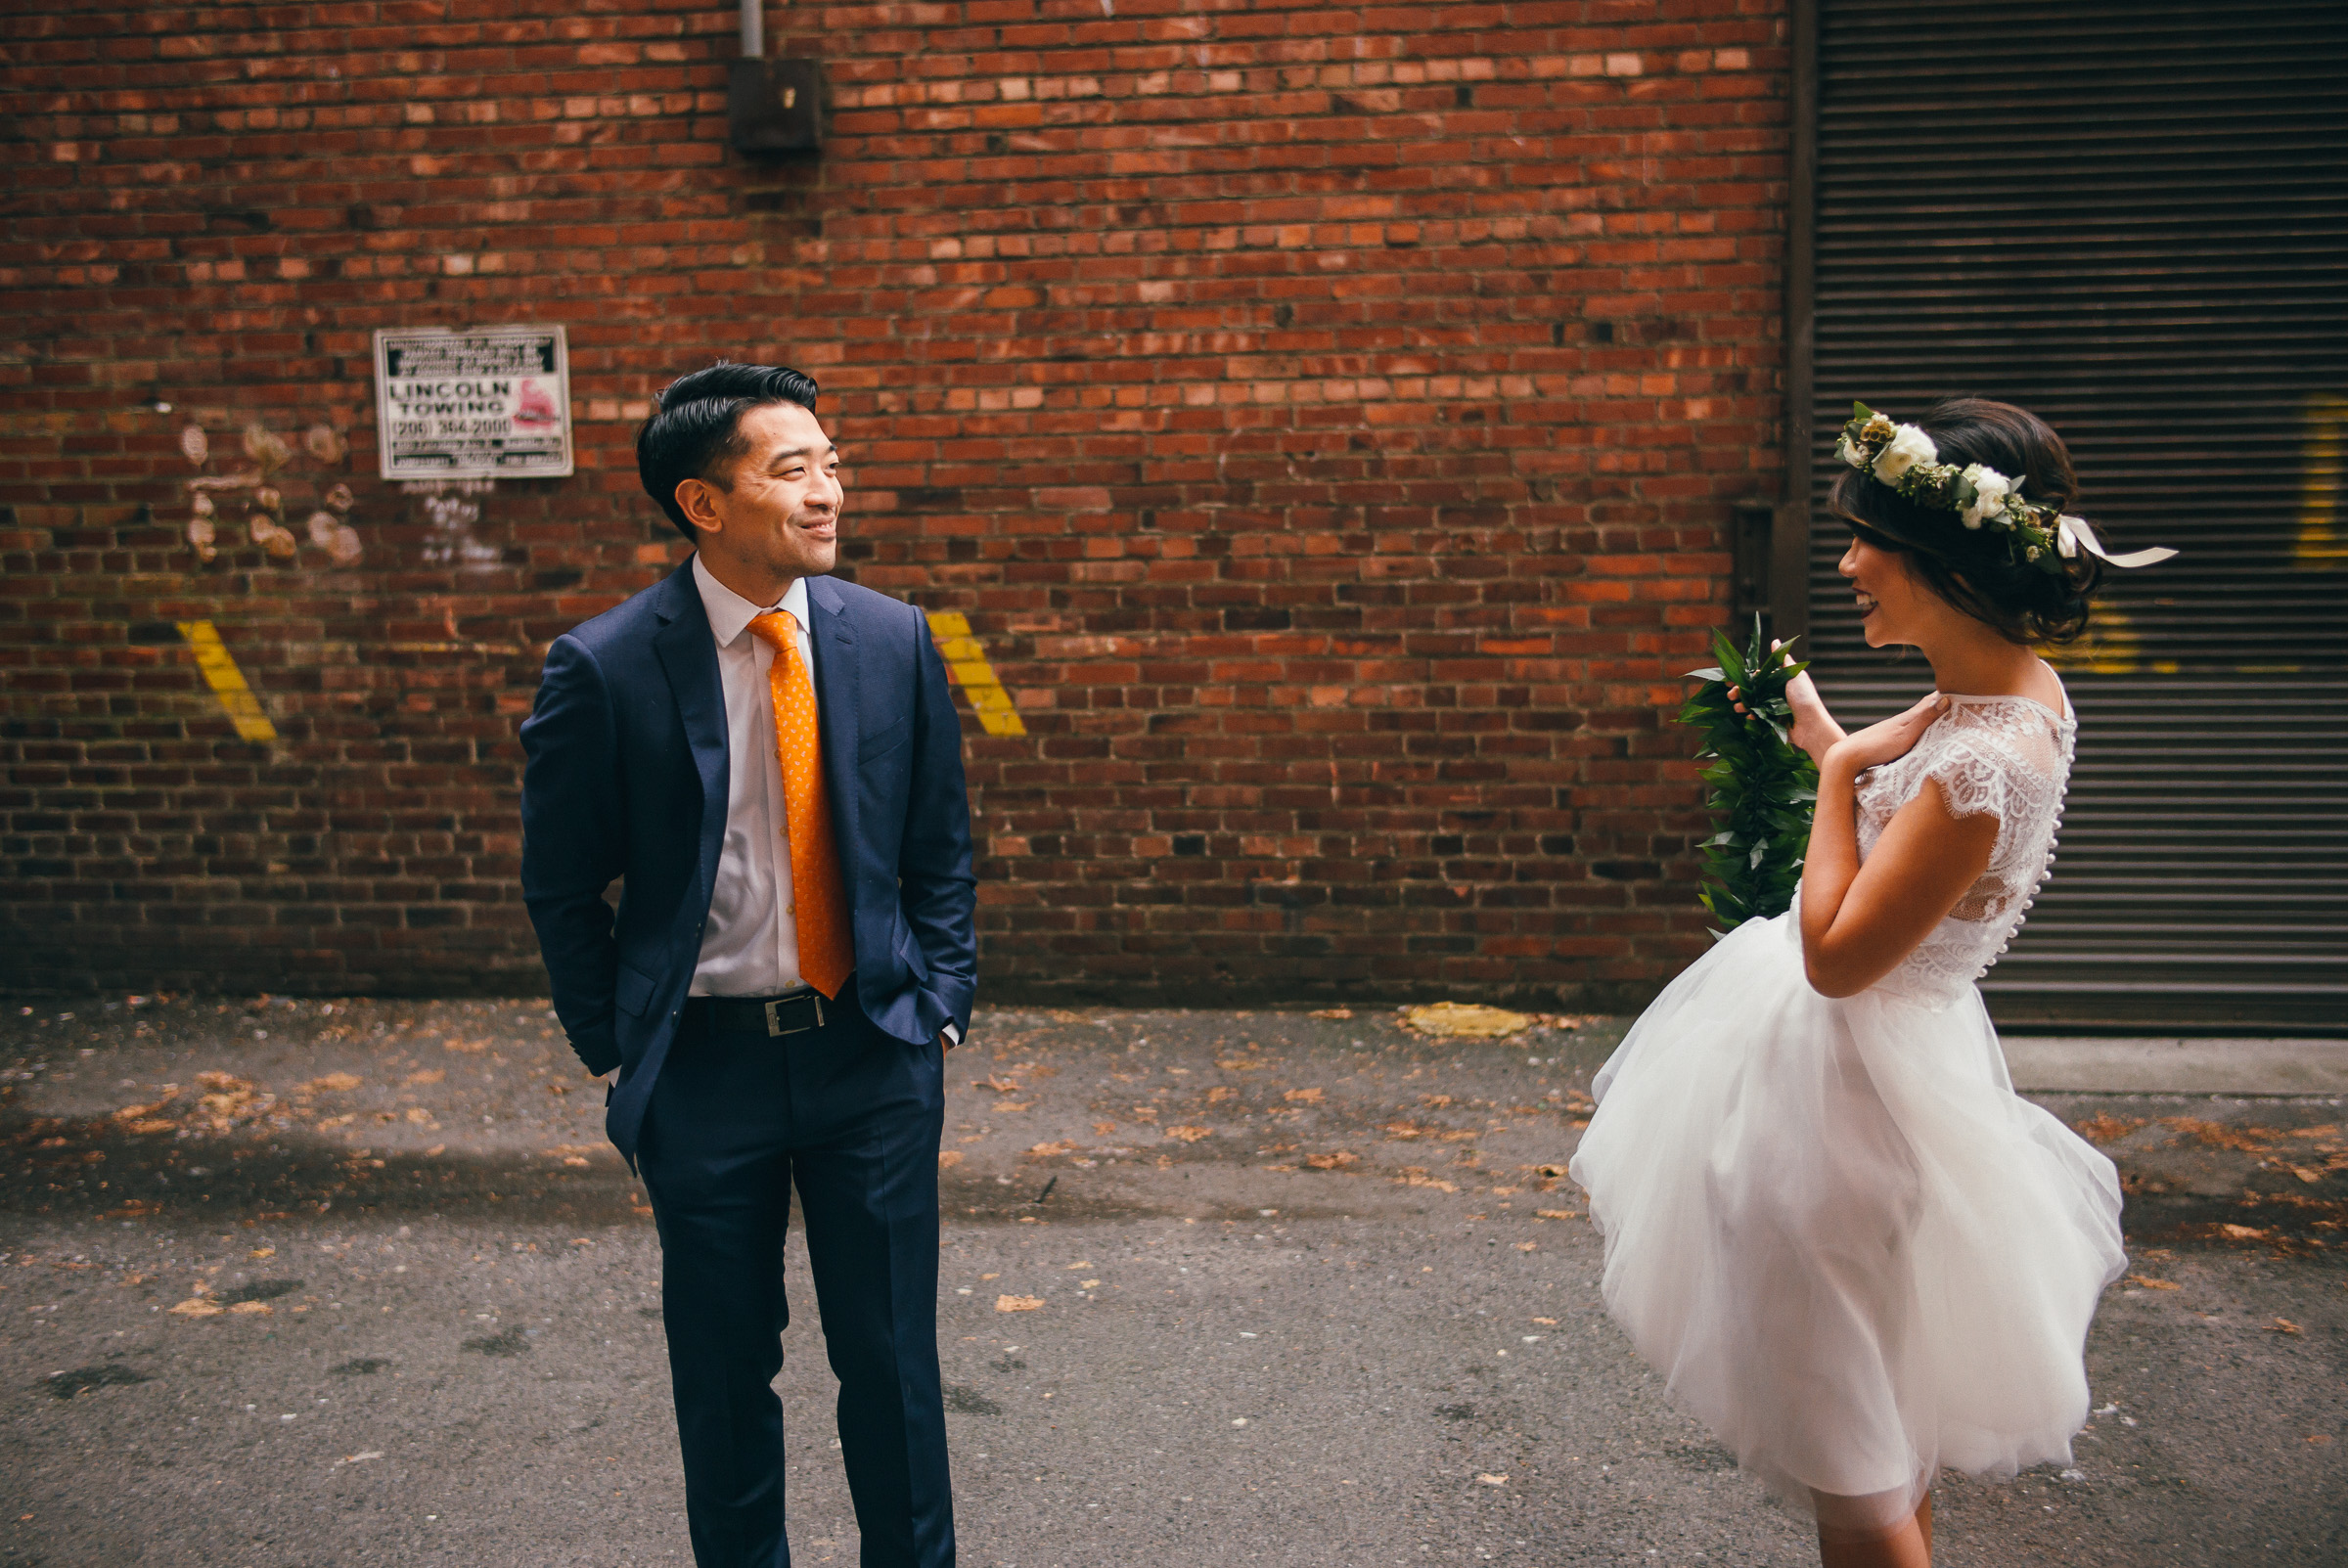 Bride and Groom First Look in Pioneer Square, Seattle